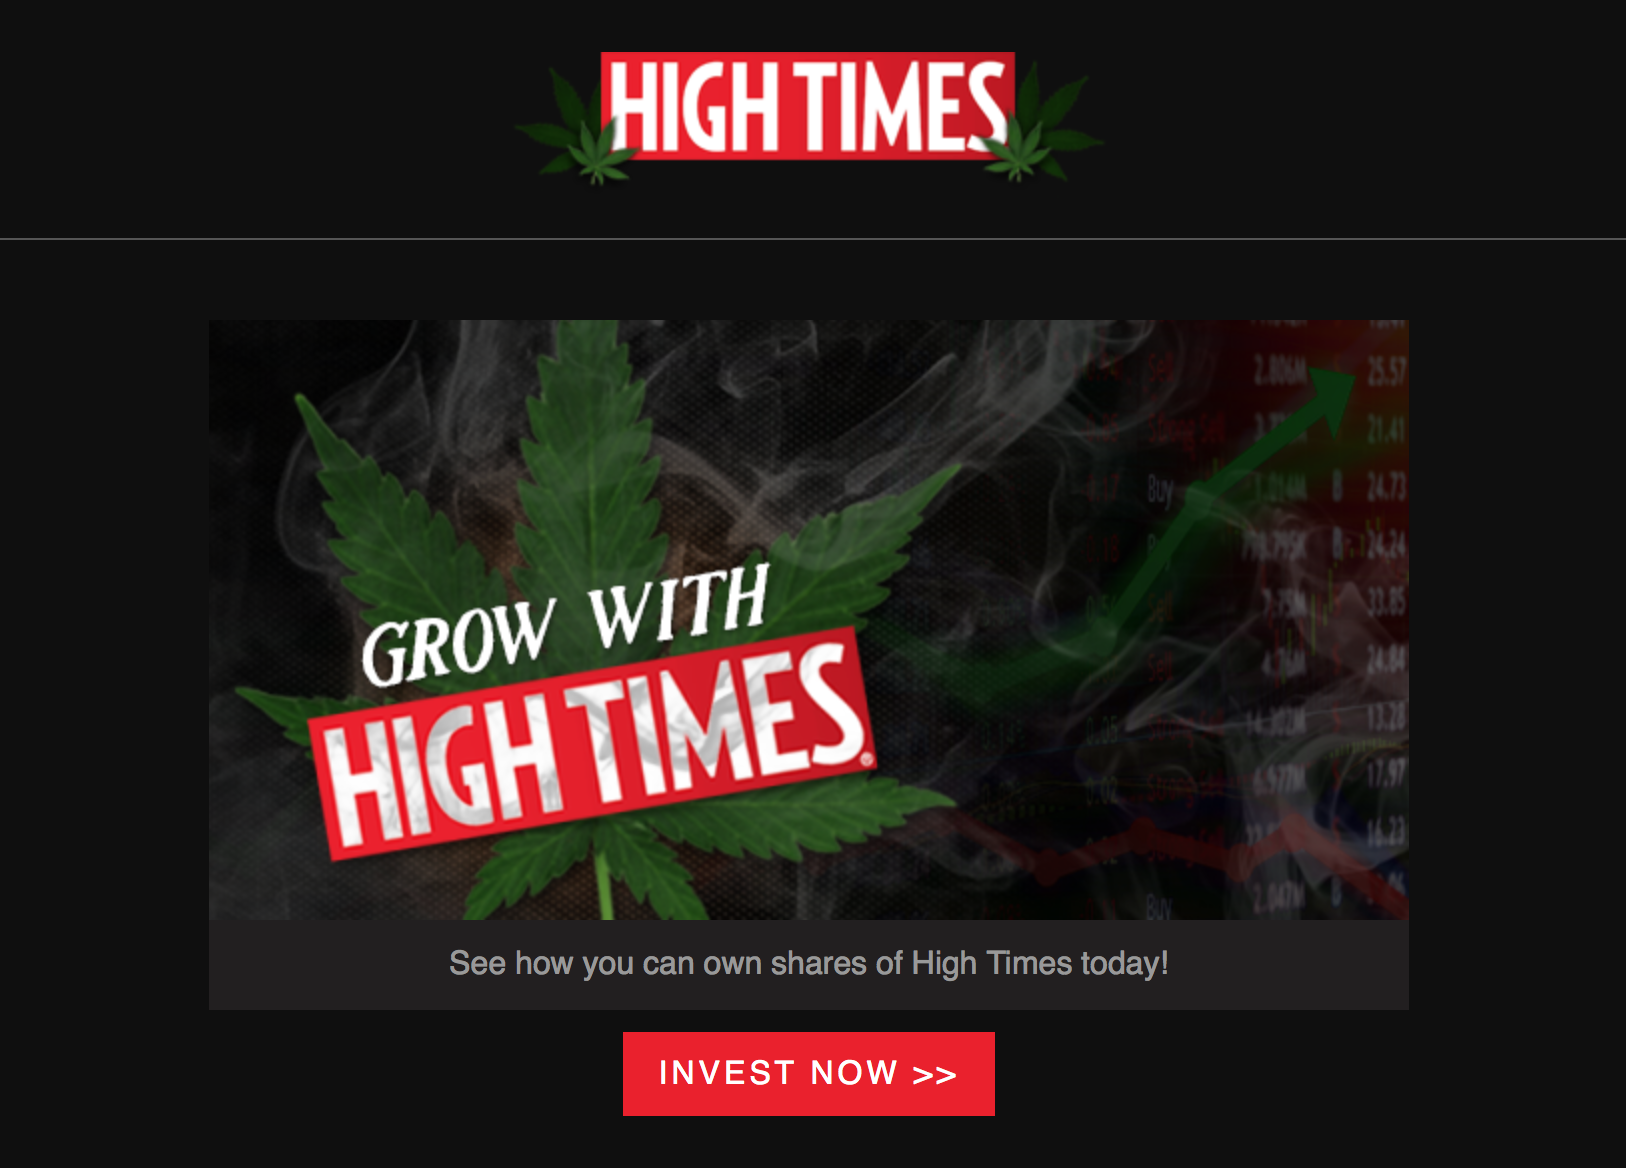 September 05, 2018 | high times - become a shareholder of high times